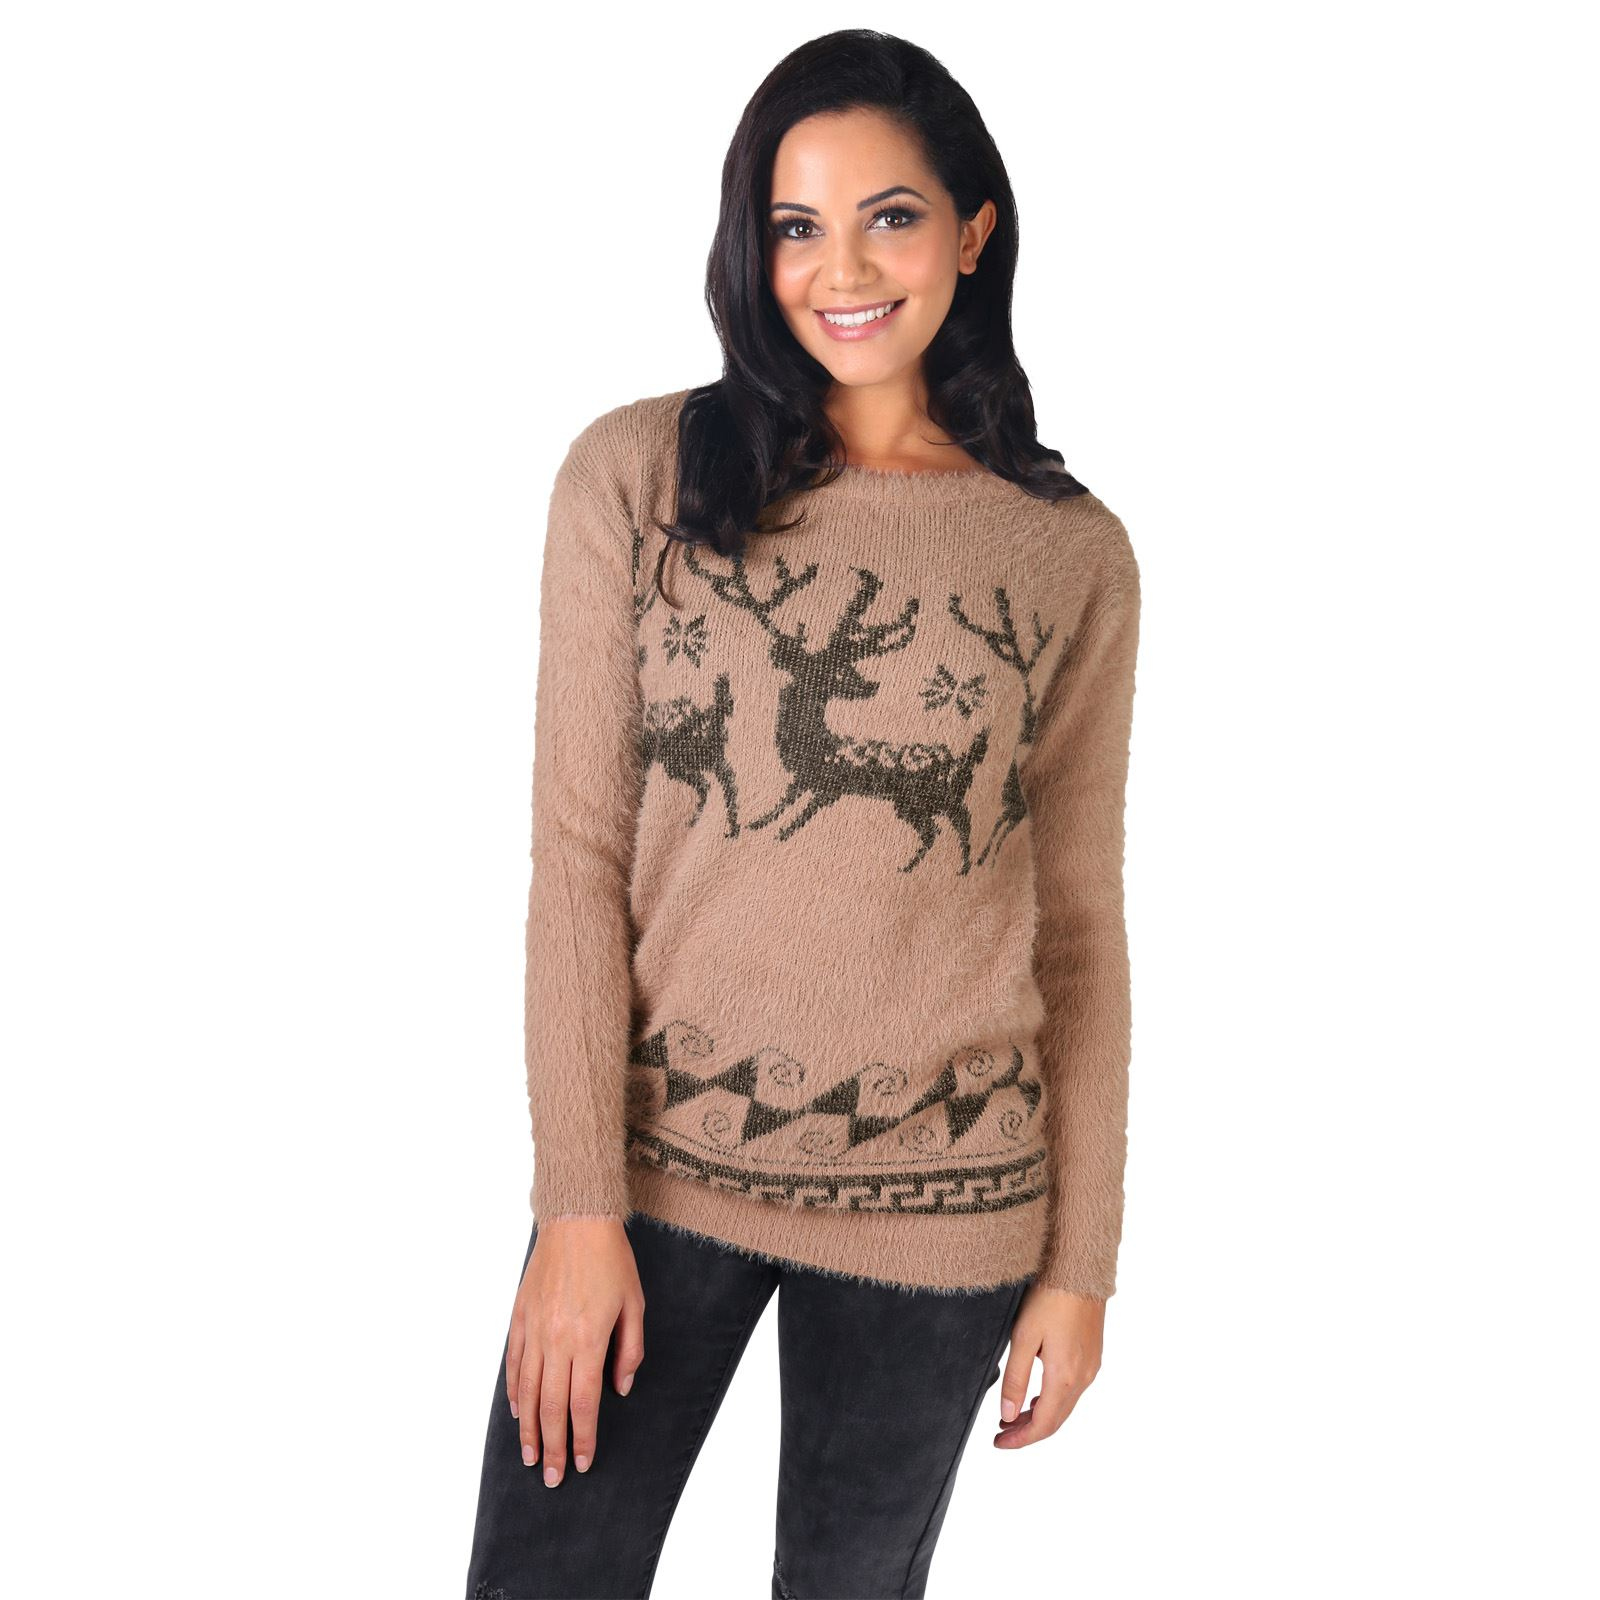 Womens Xmas Christmas Jumper Ladies Novelty Retro Pullover ...